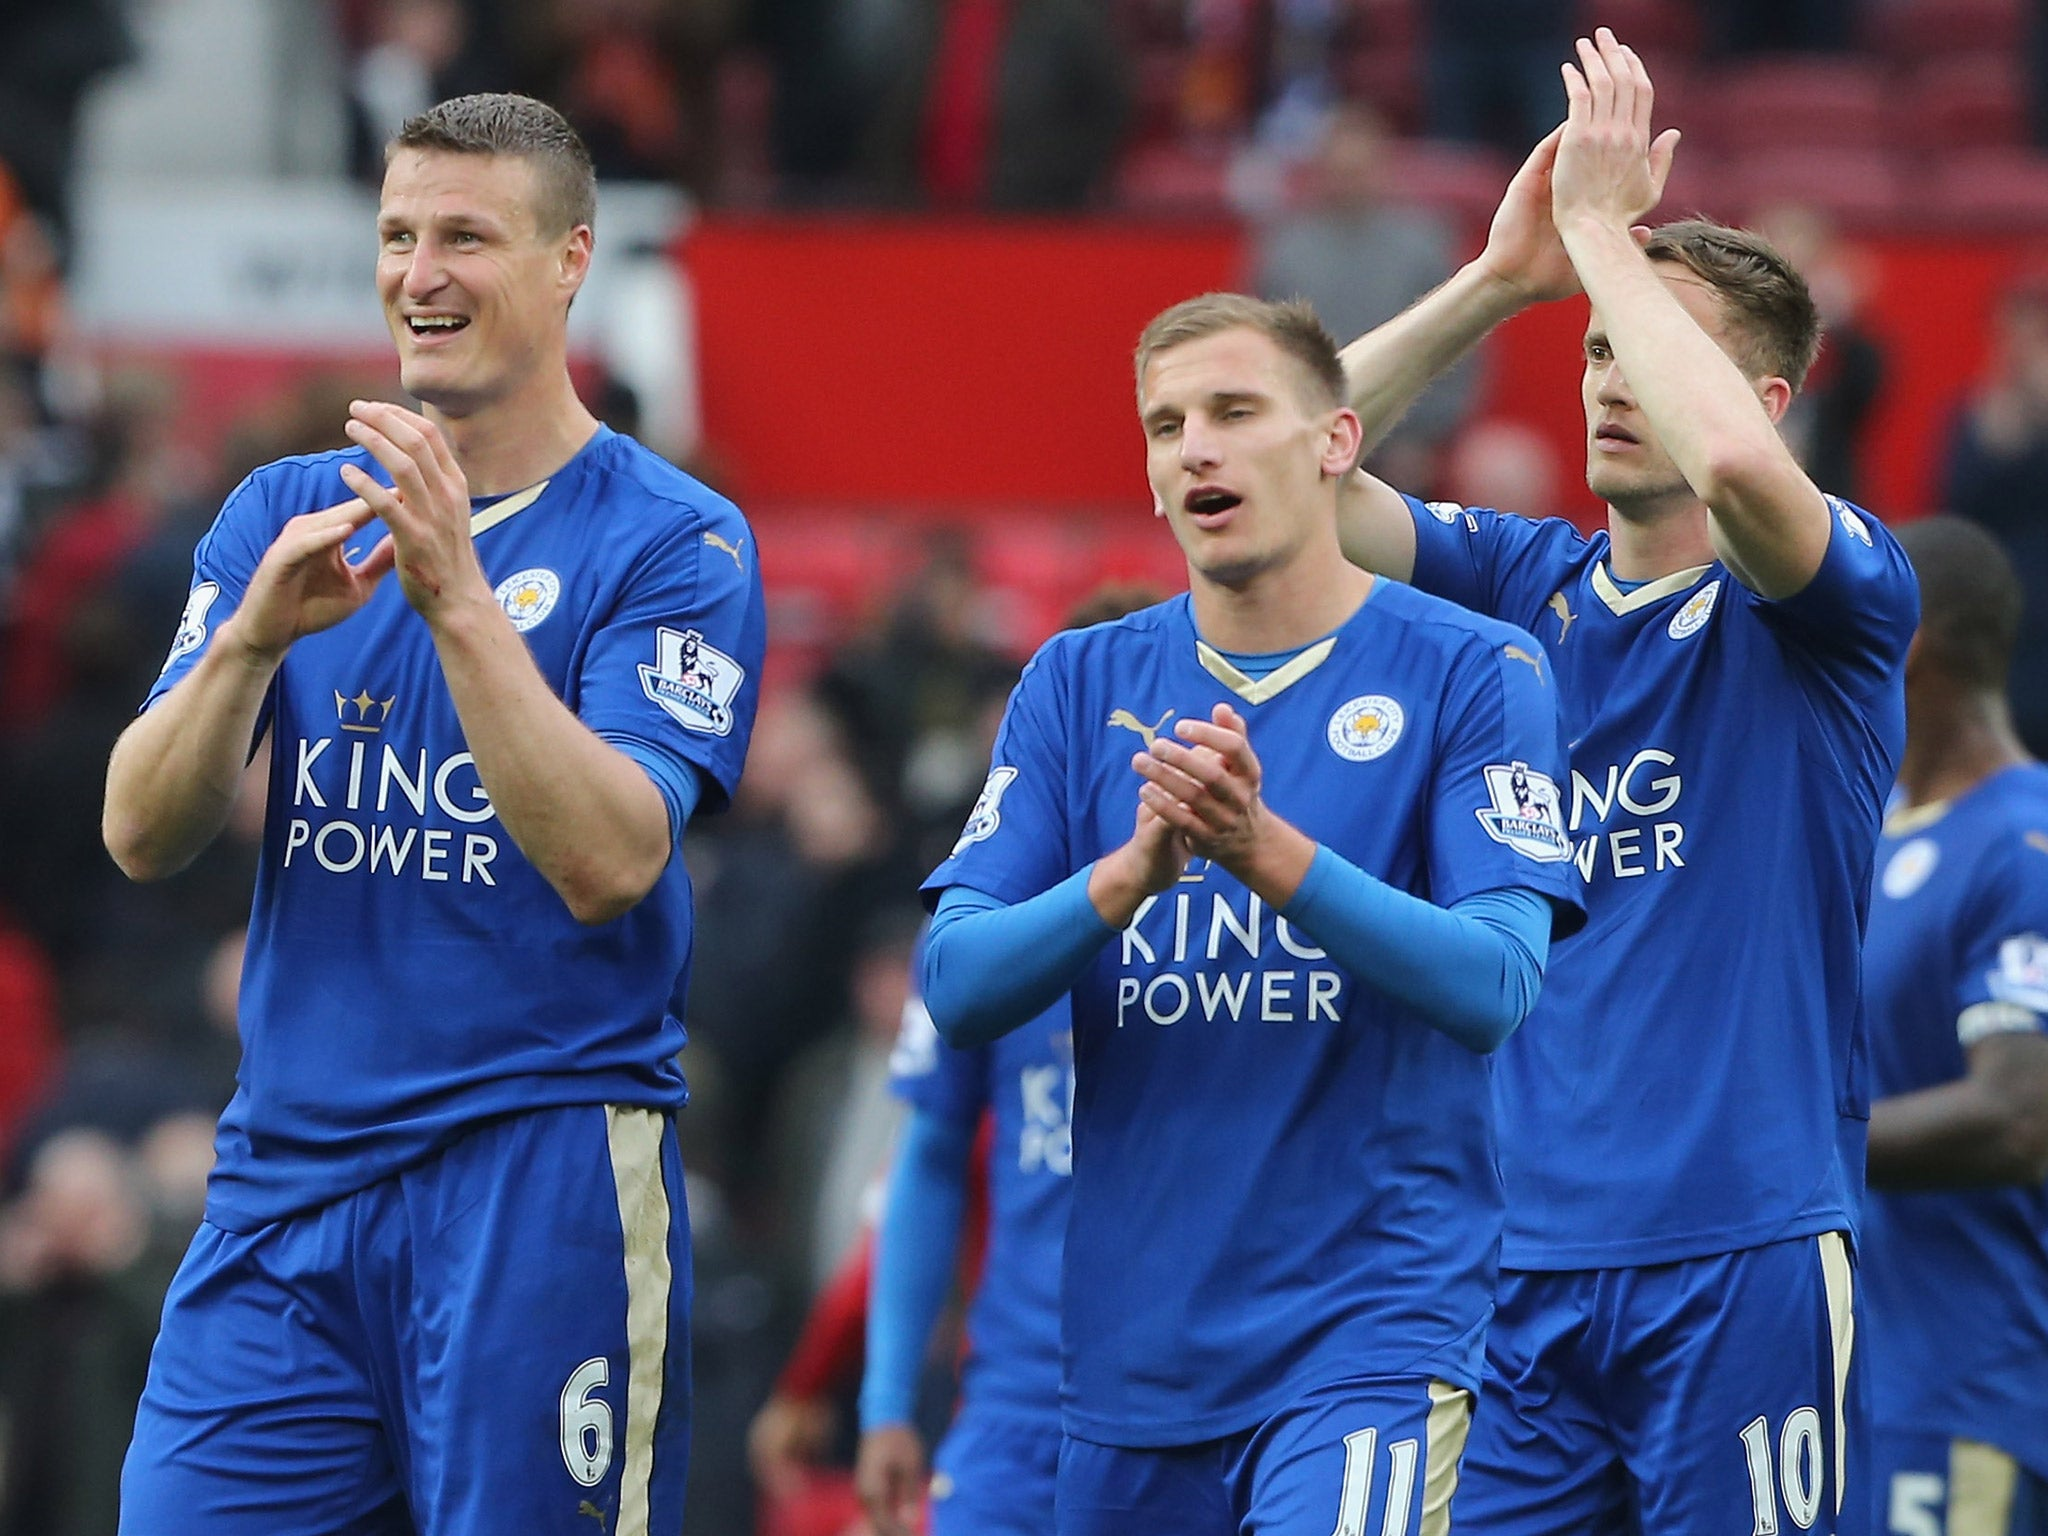 Leicester City players will watch Chelsea vs Tottenham together after skipping West Brom match, says Marc Albrighton